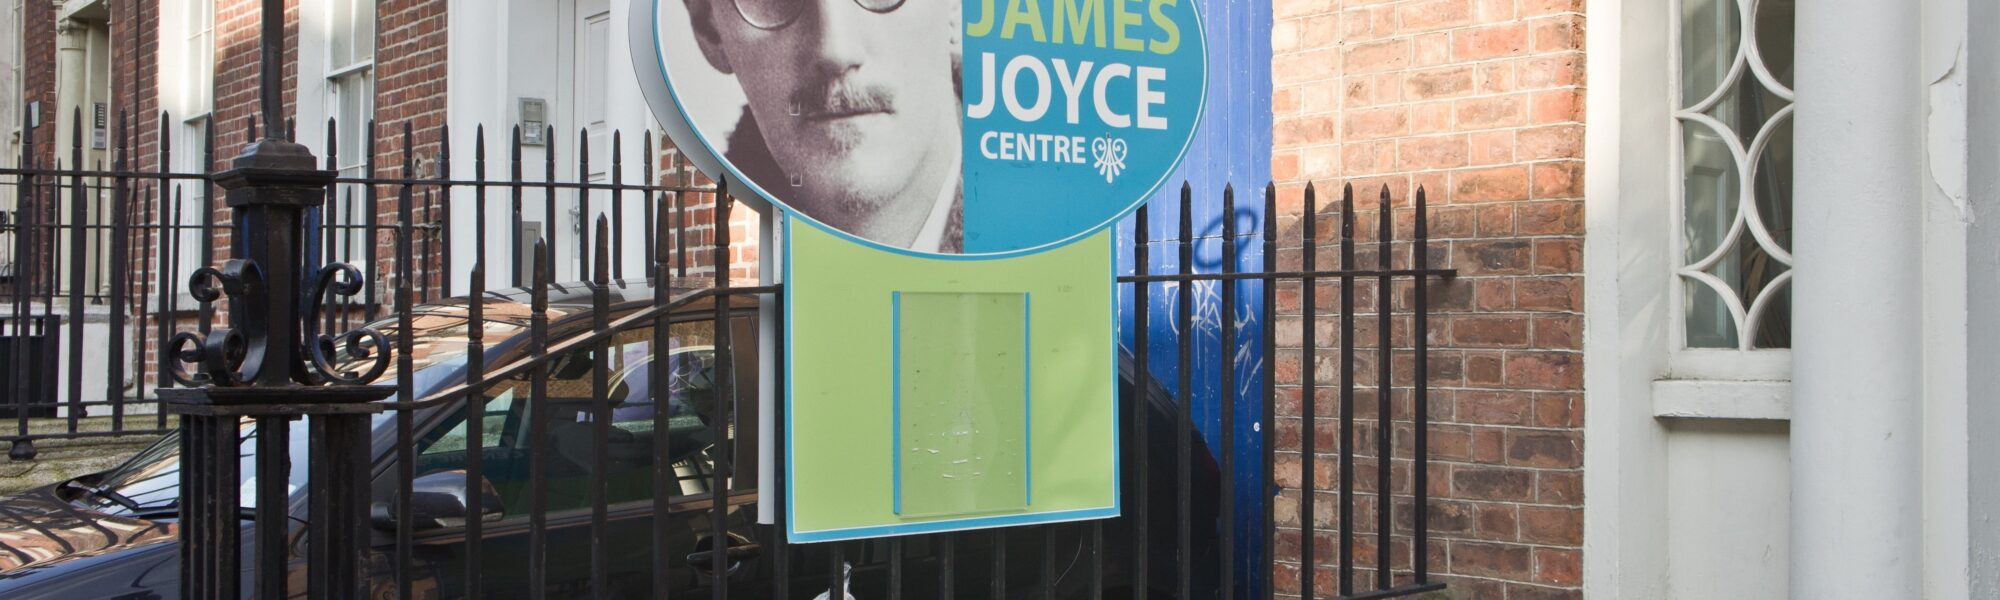 Le James Joyce Centre - William Murphy - cc